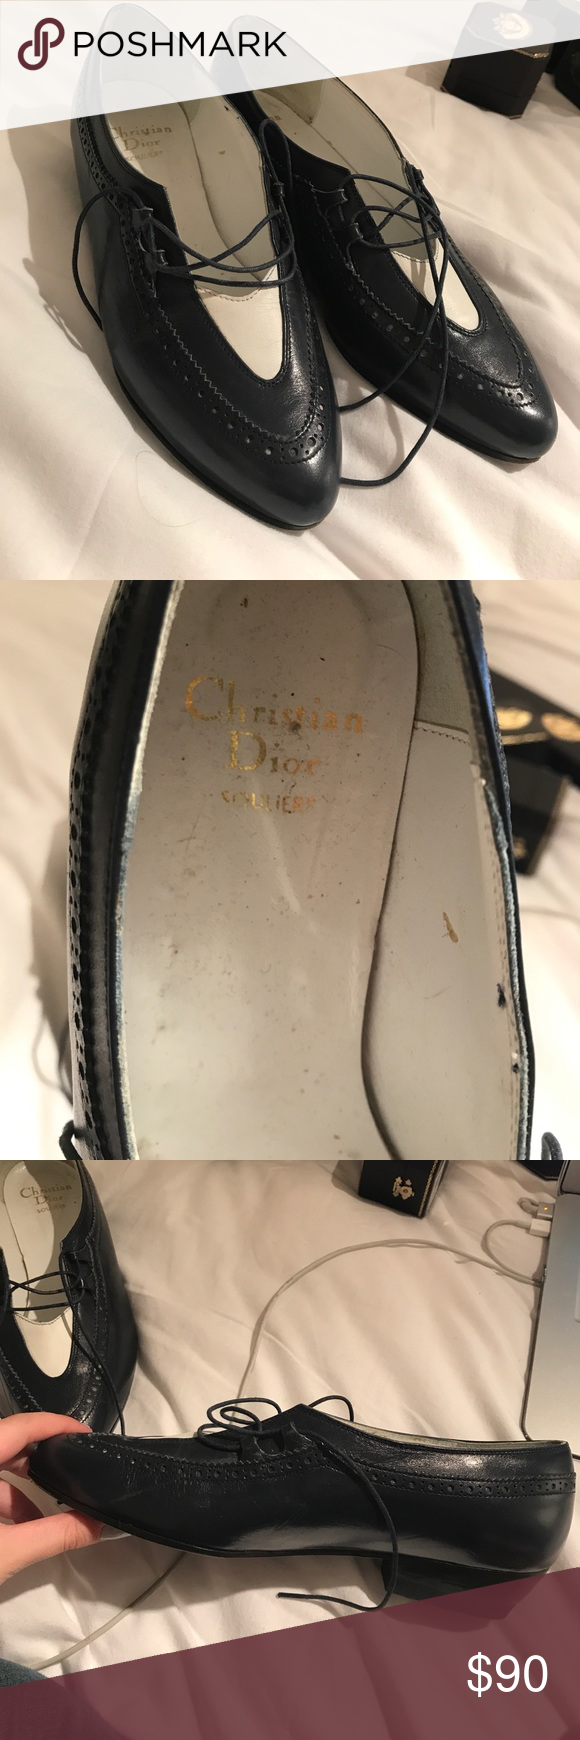 Vintage christian dior shoes drunk